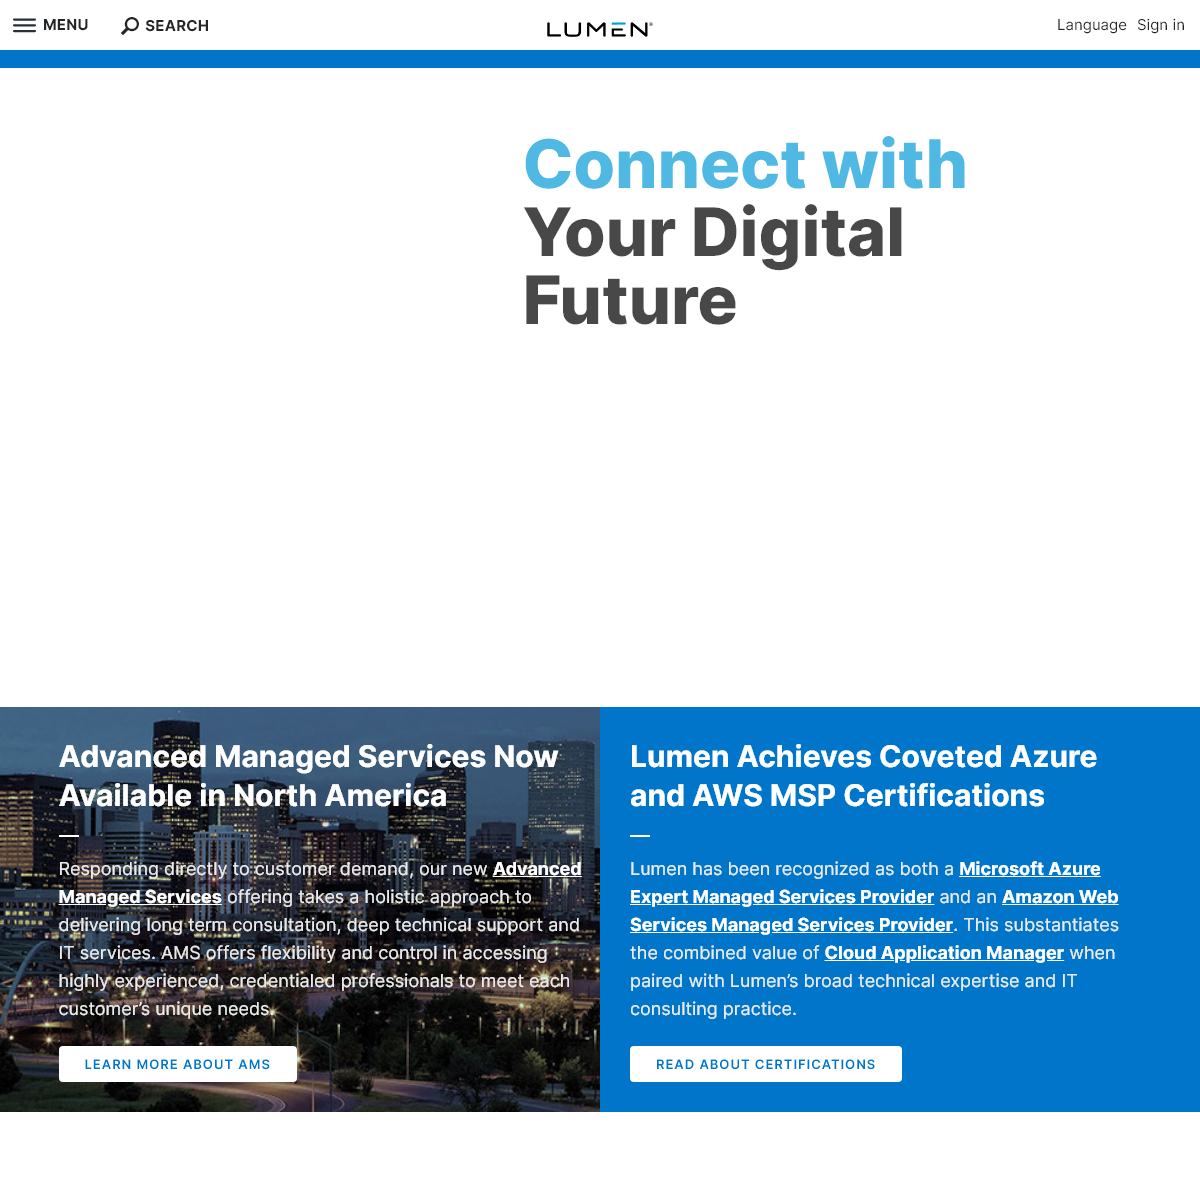 Cloud Computing Services and Managed Services - Hybrid Cloud and IT Solutions